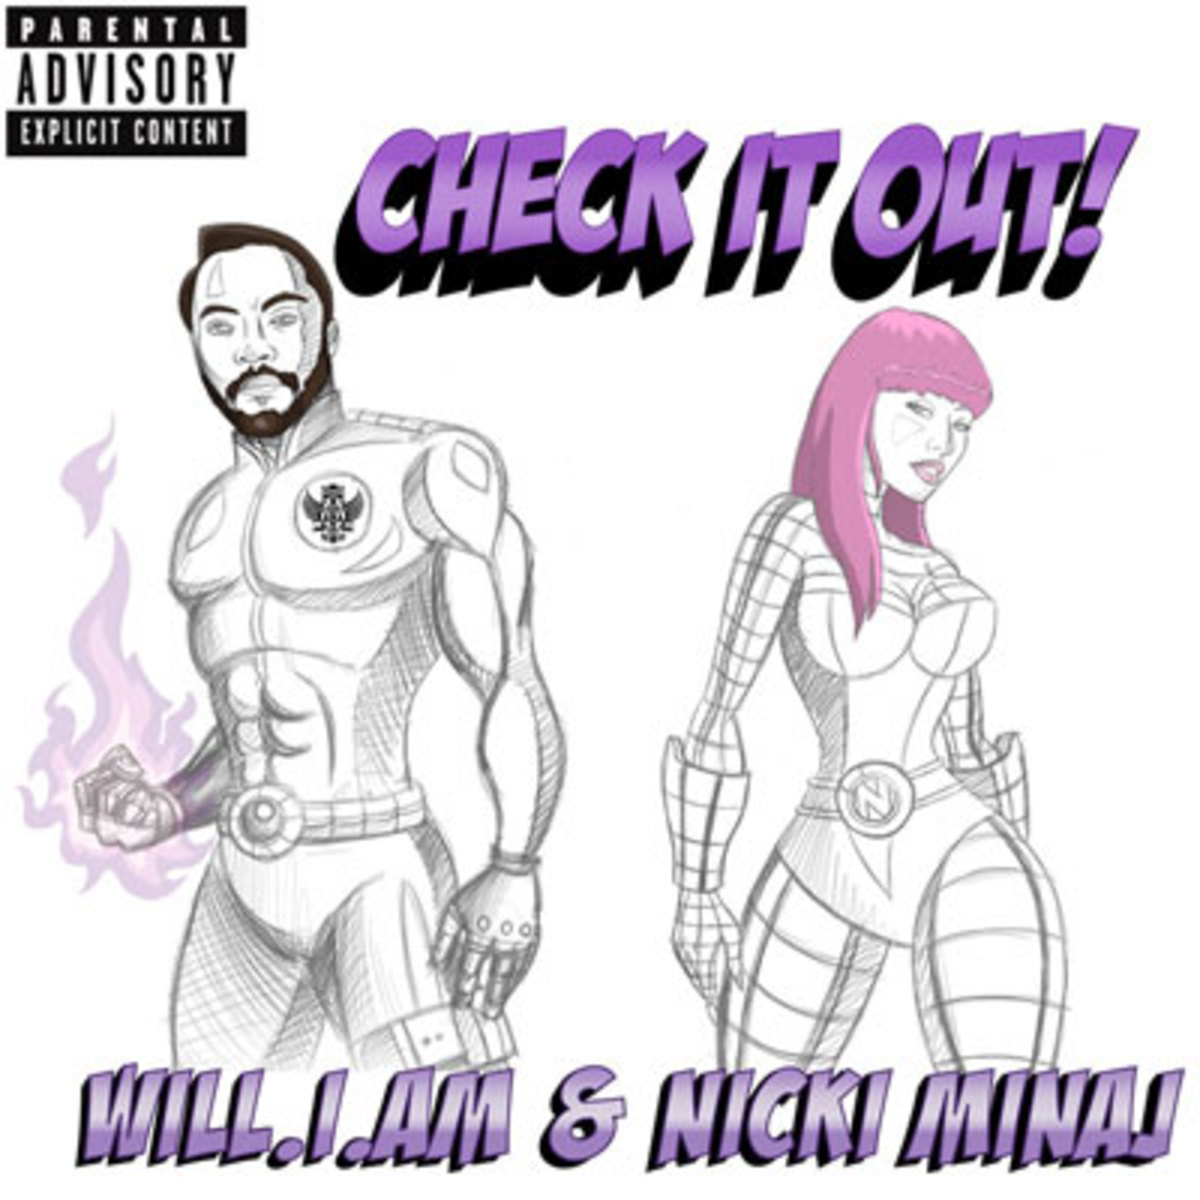 williamnicki-checkitout.jpg